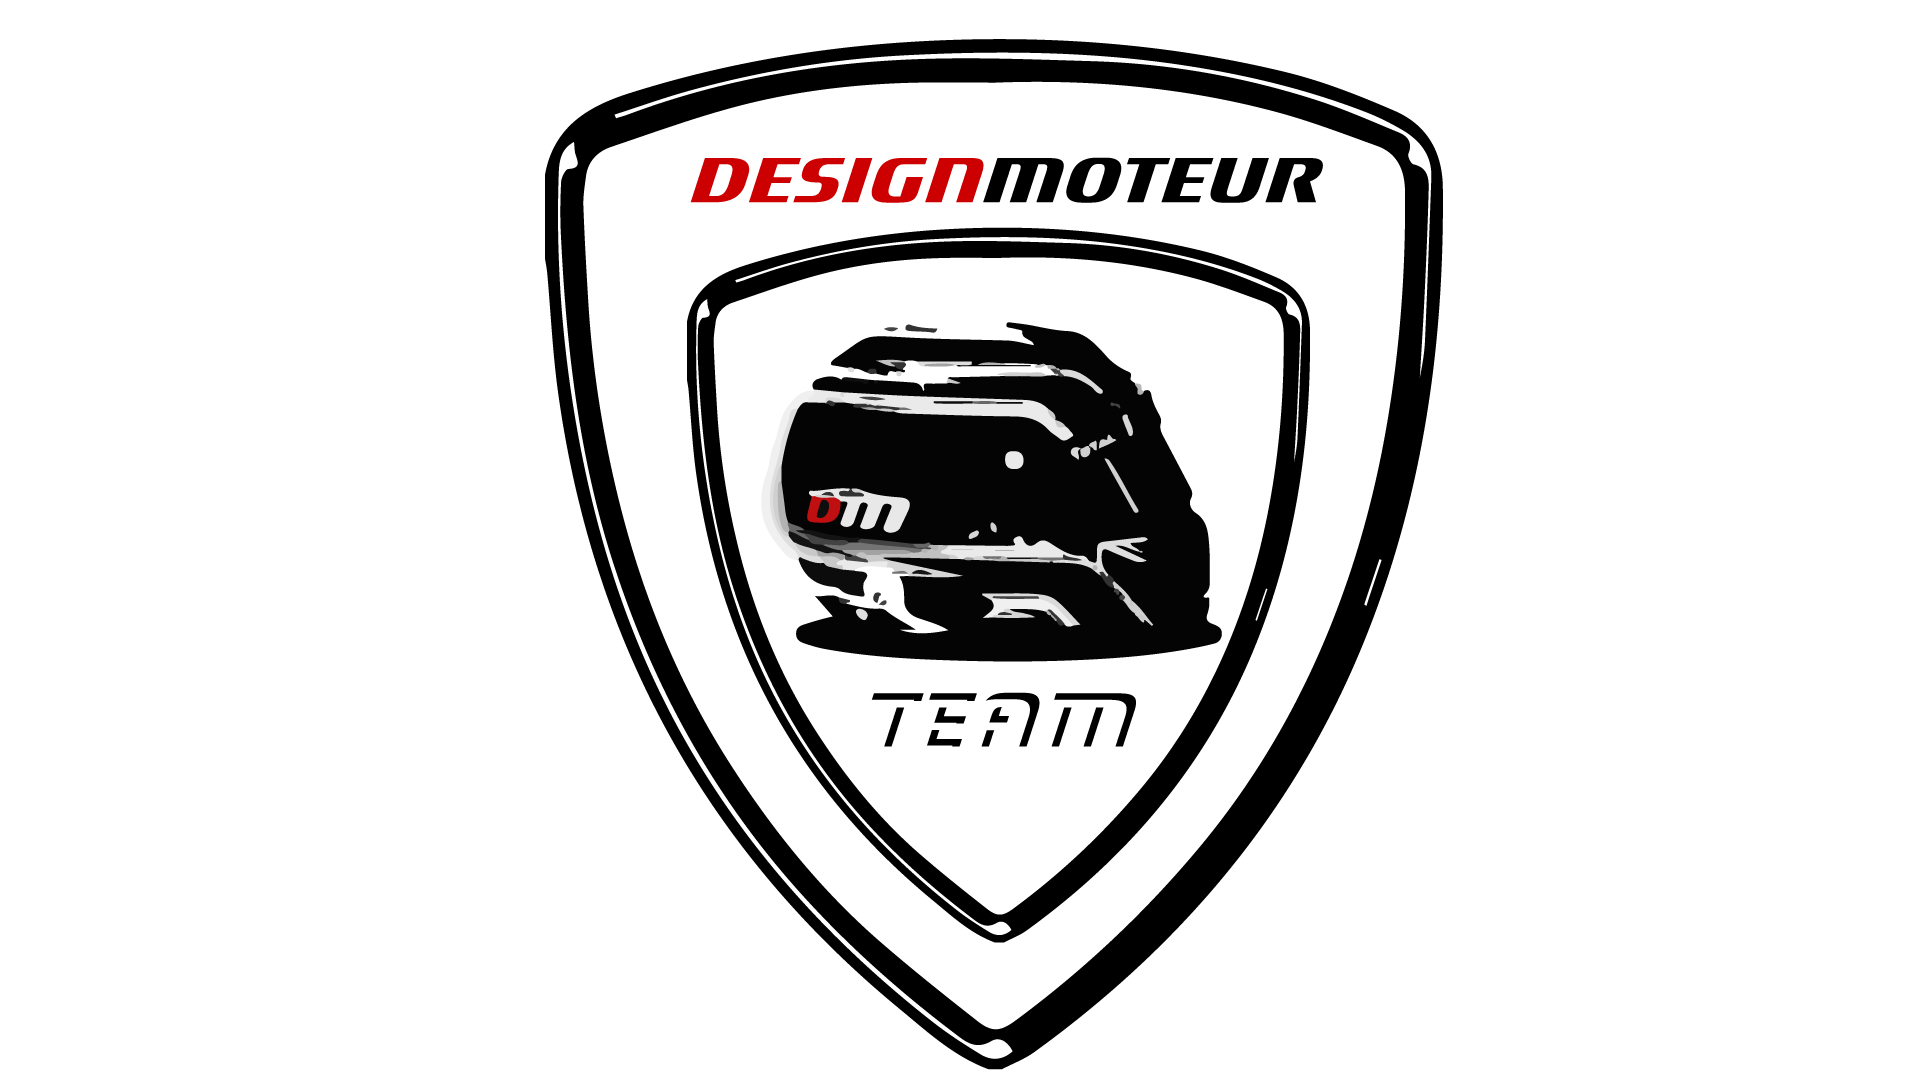 Team DM - DESIGNMOTEUR - Badge écusson